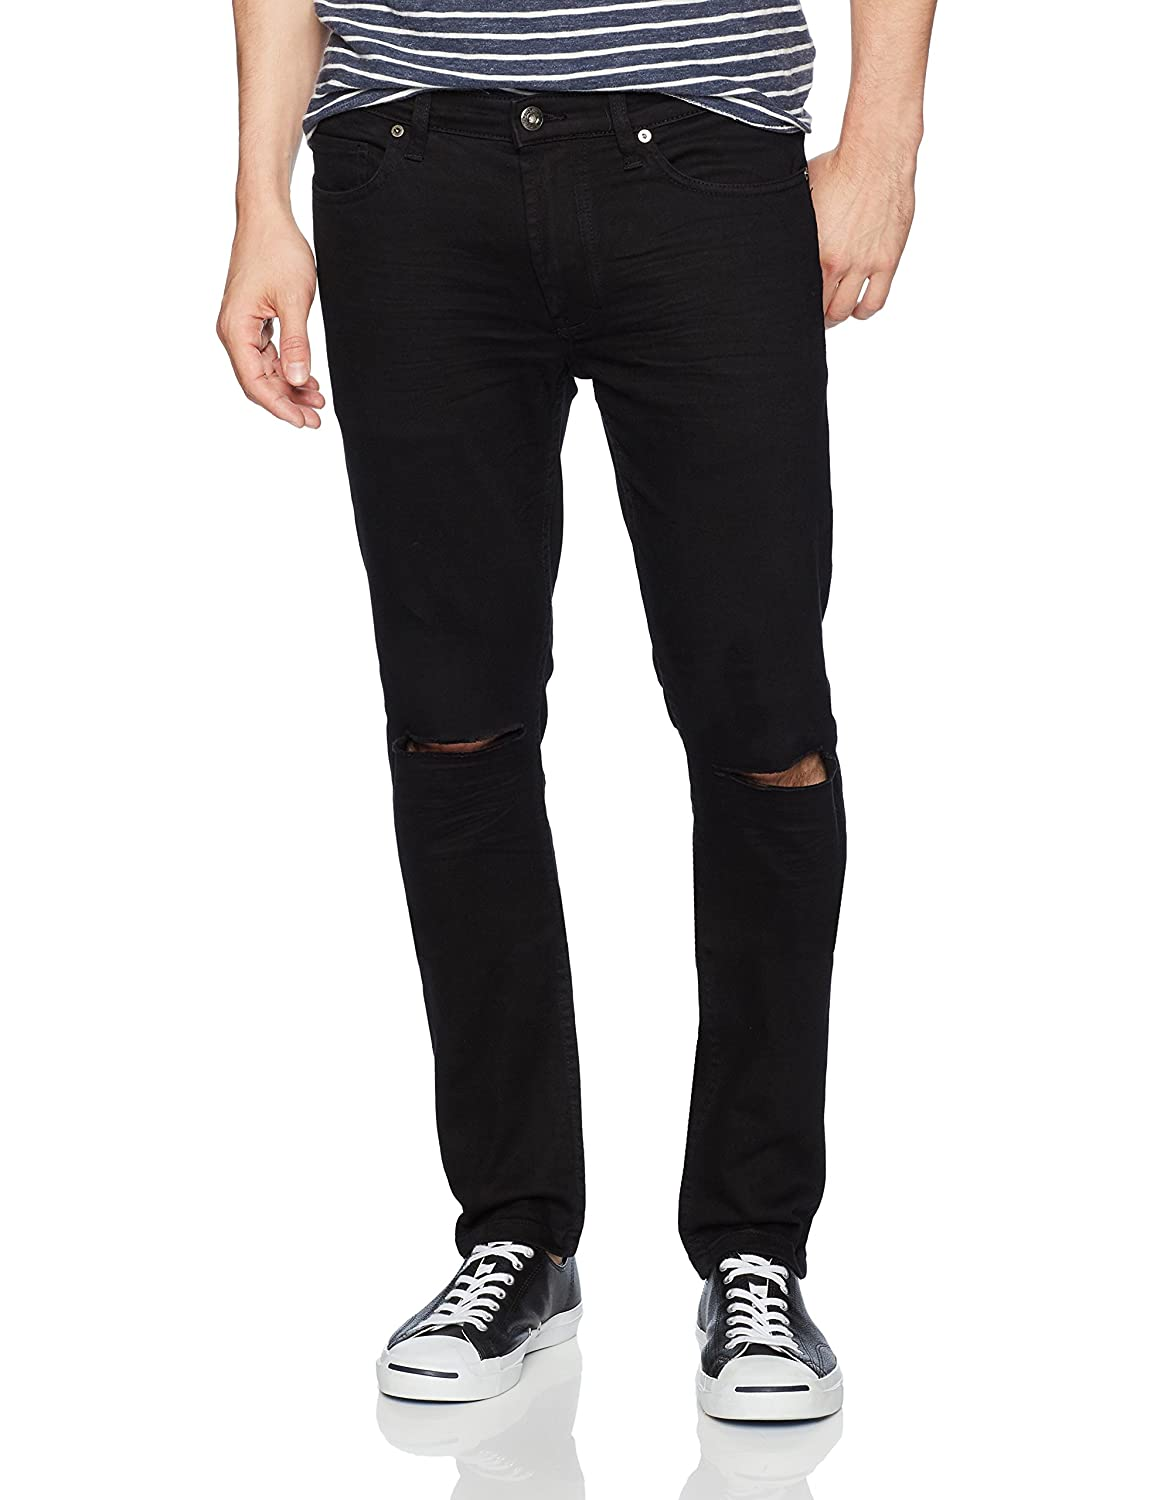 BLANKNYC High Q Denim Distressed Pant Pants